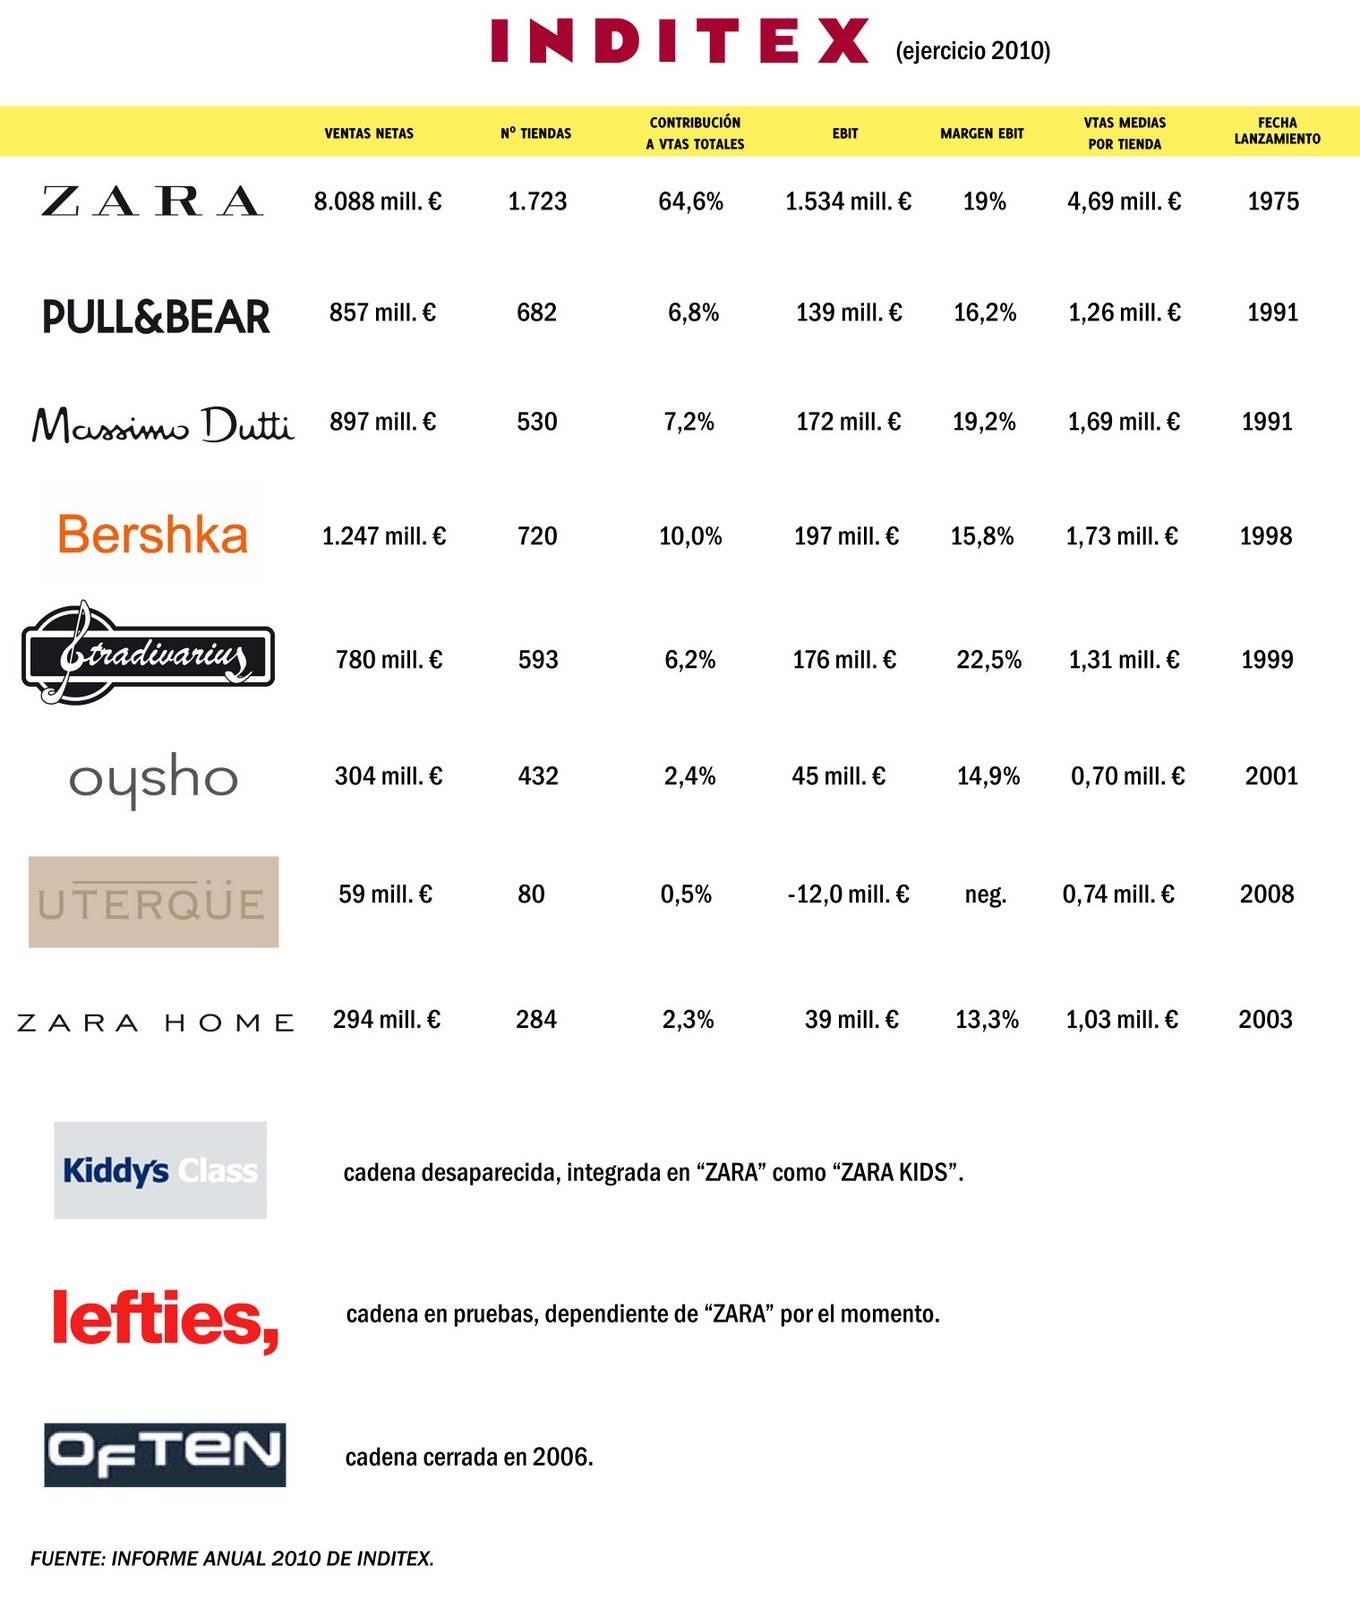 empresas inditex the fashionable company in english el it is interesting to see in the previous graph the differences in profitability between the stores of inditex the average s of a zara store are 4 69